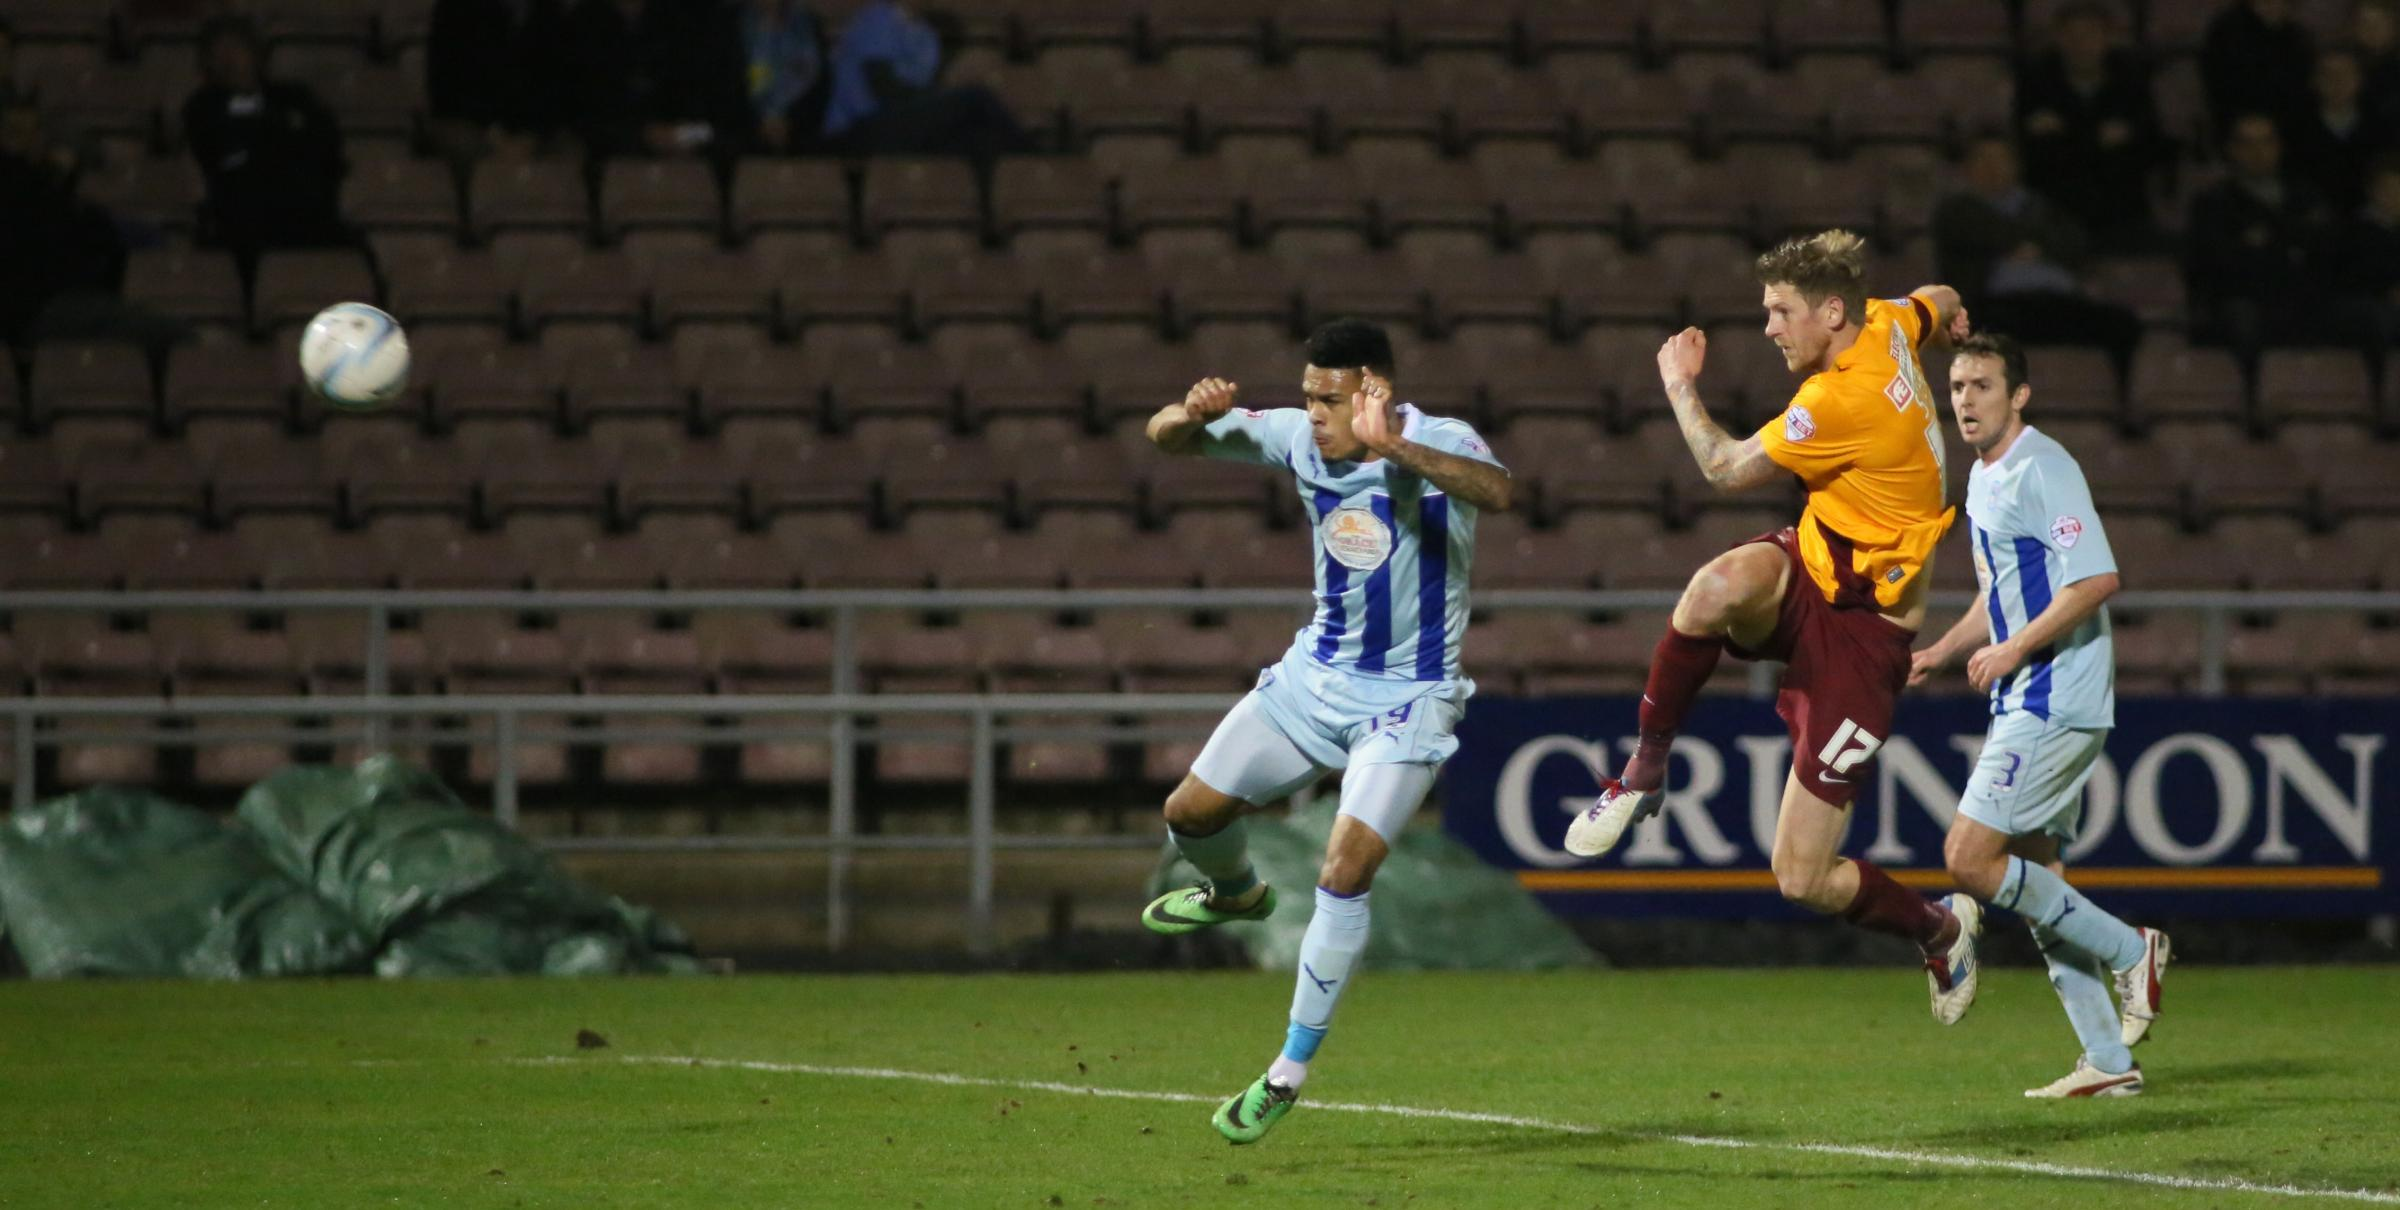 Bantams get the silent treatment in goalless draw